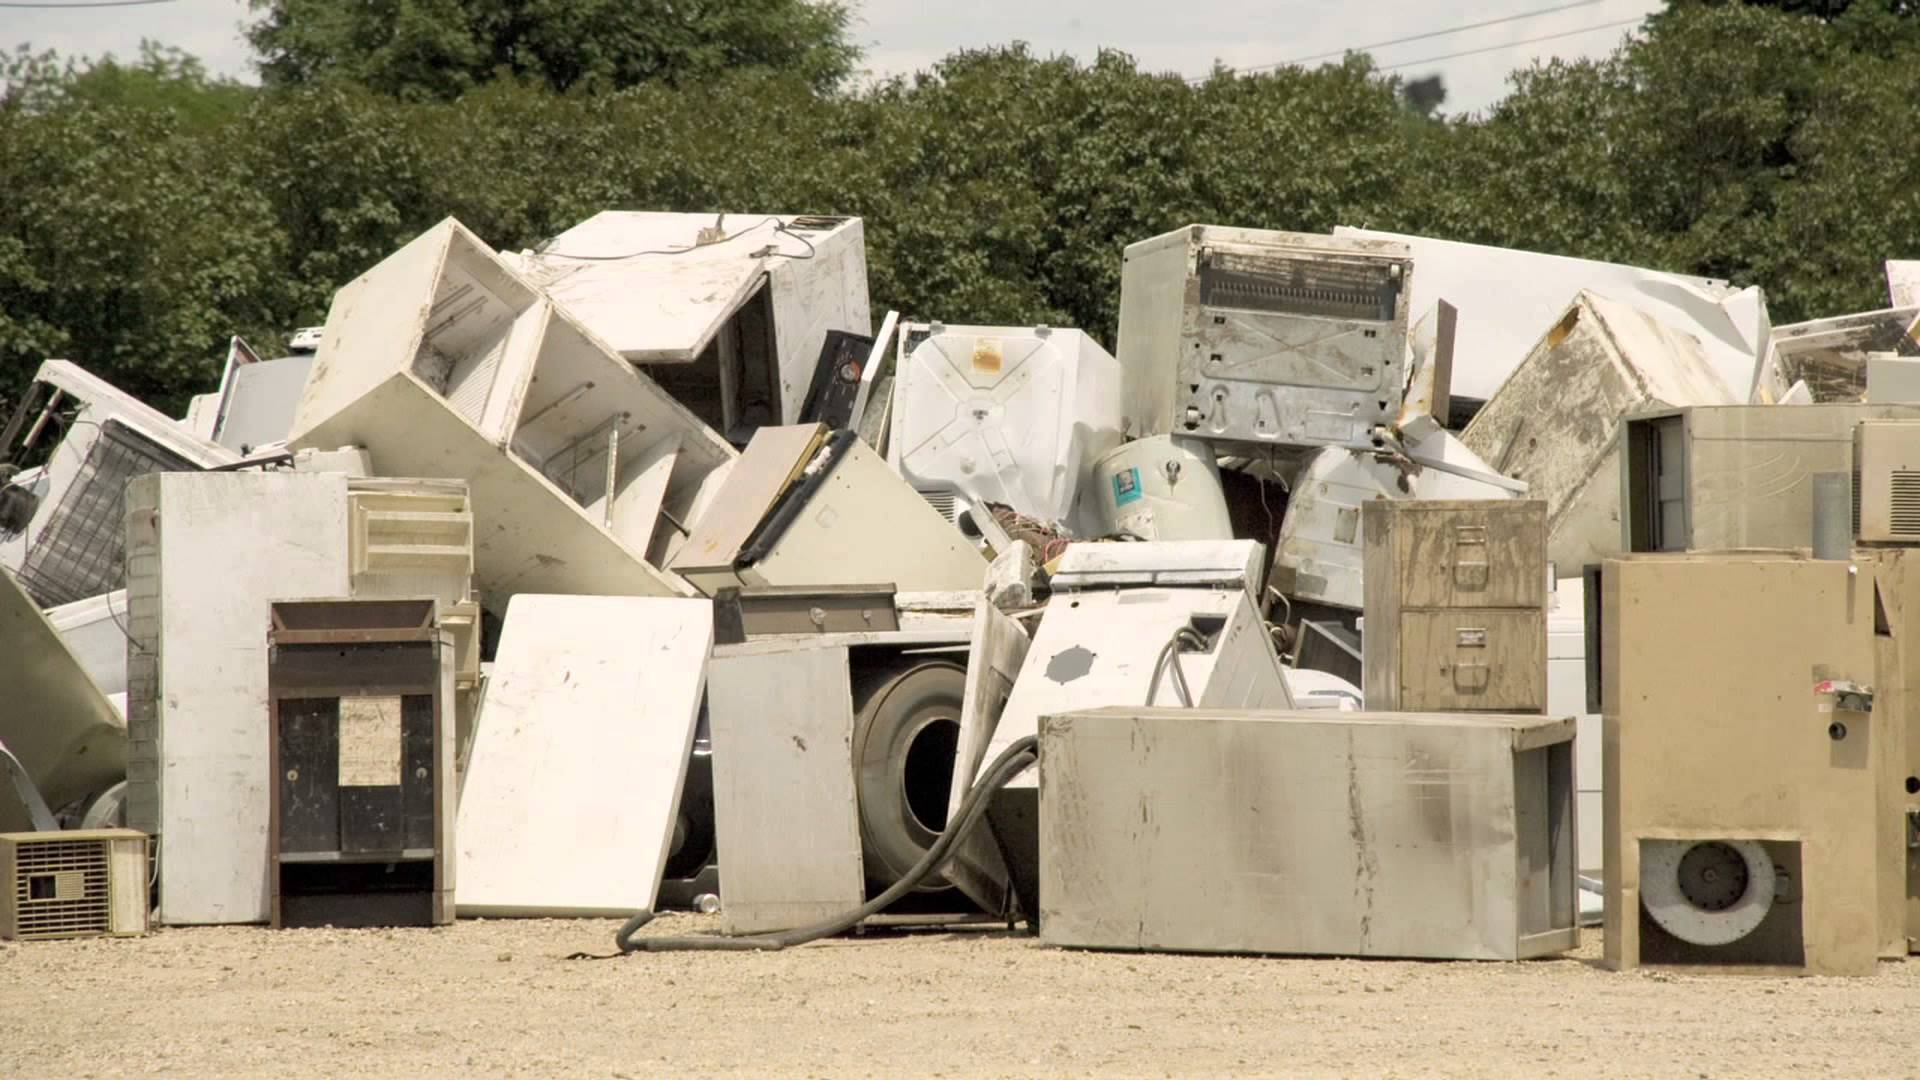 Township Committee Working on Securing a Bulk Waste Collection